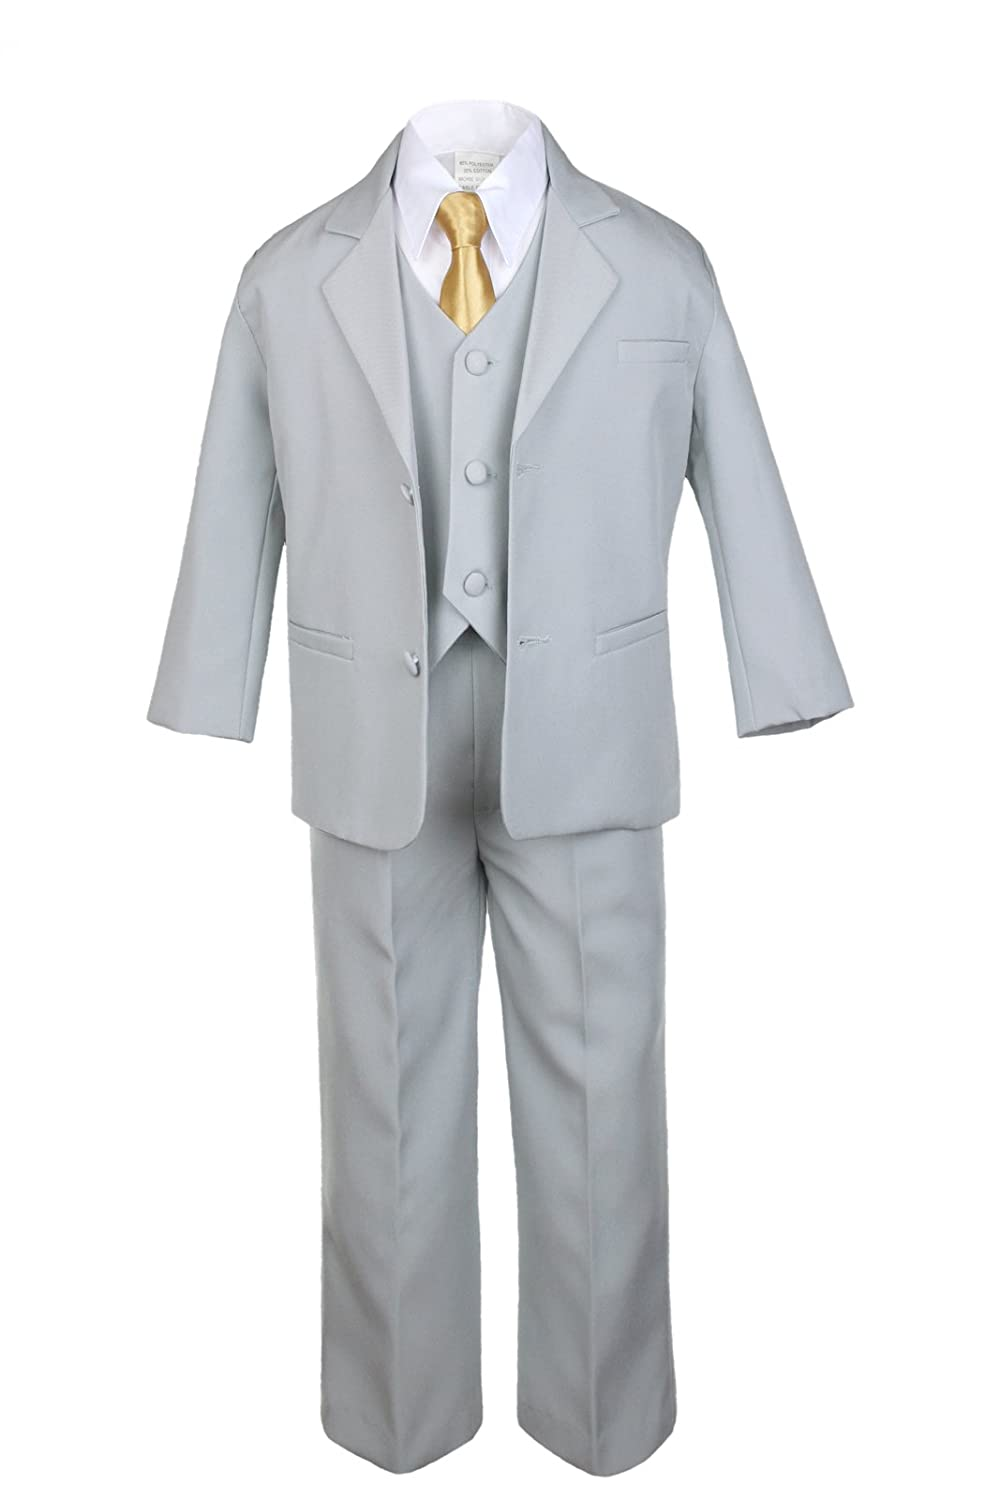 Unotux 6pc Boys Gray Vest Set Suits with Satin Gold Necktie Outfits Baby to Teen